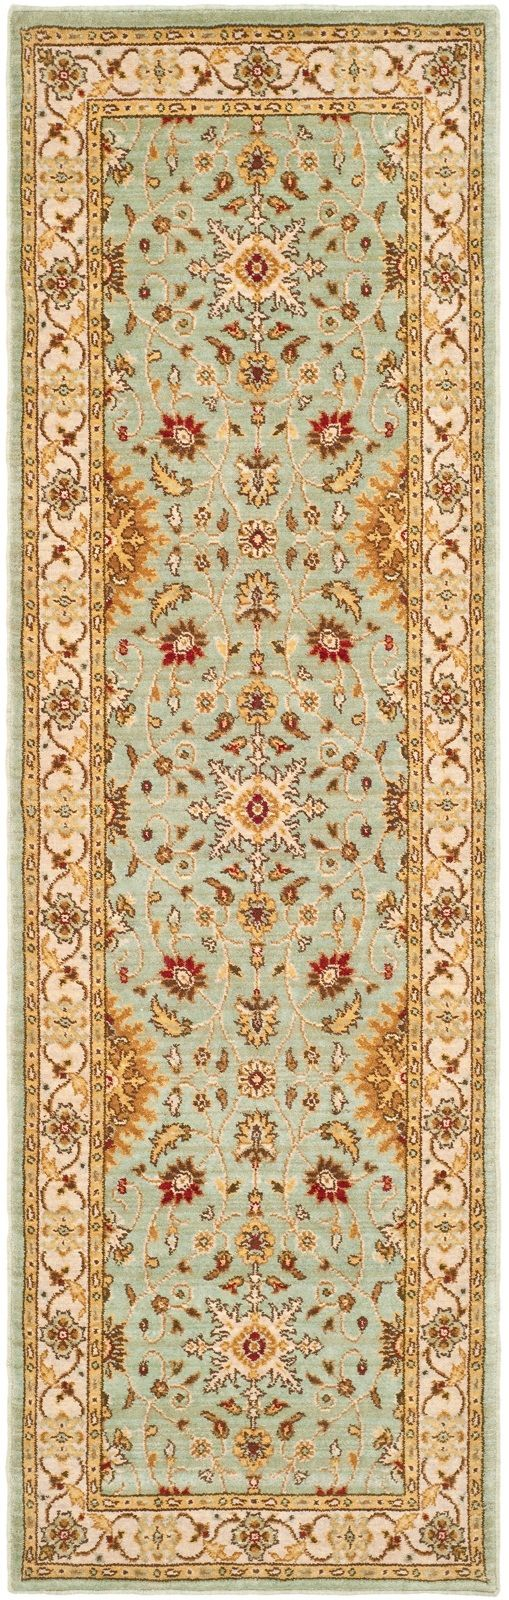 safavieh tuscany traditional area rug collection